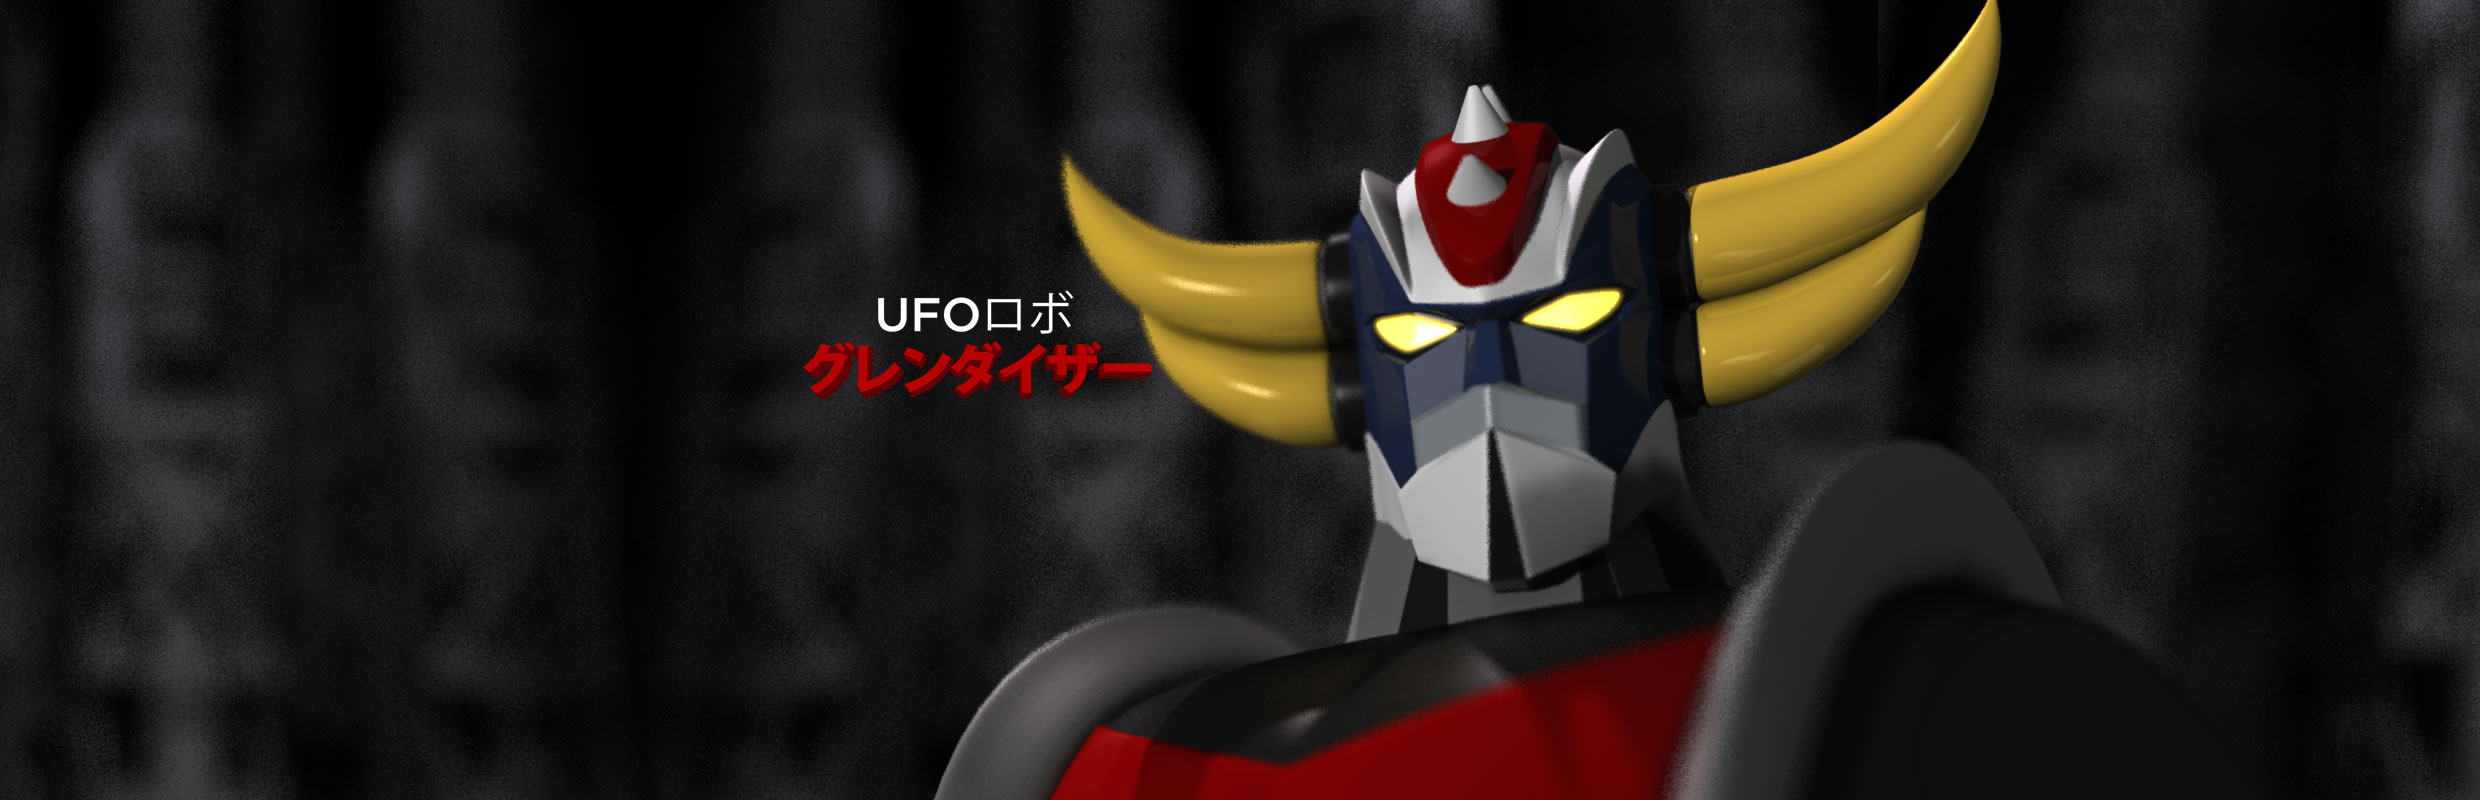 Ufo Robot Grendizer in 3d: coming in 2020